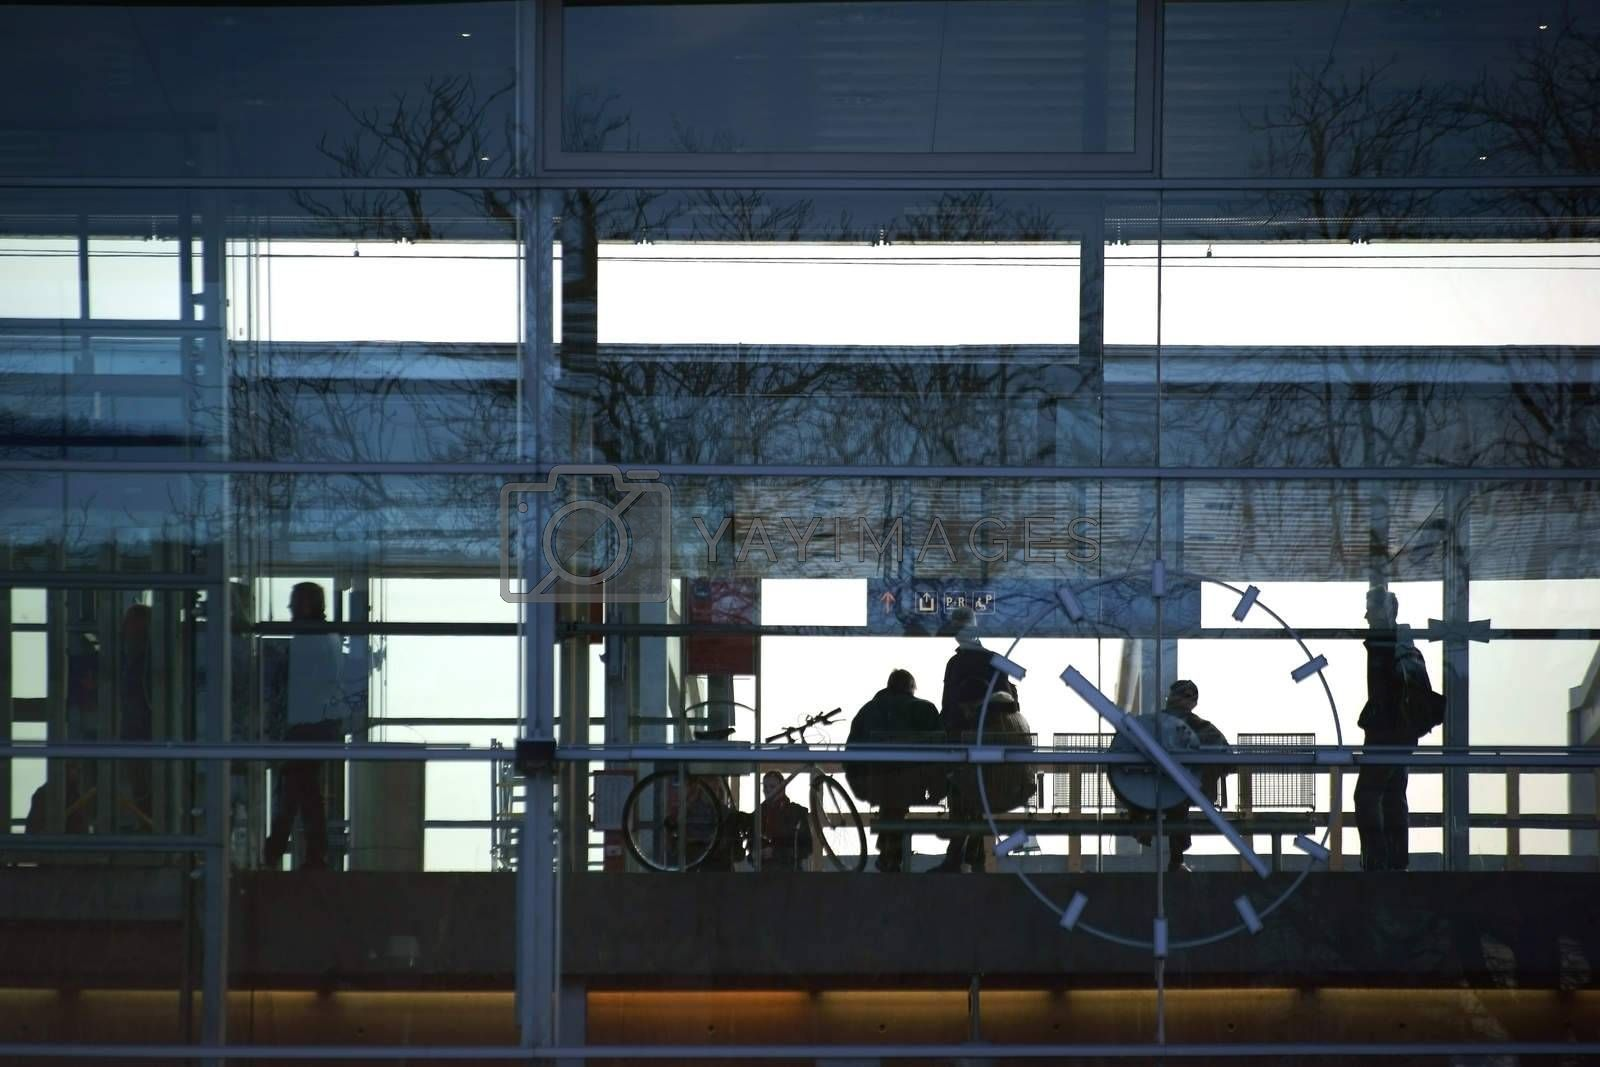 Baden, Austria - November 15, 2015: Travelers departing from the main entrance of the modern glass building of the main station on November 15, 2015 in Baden near Vienna.